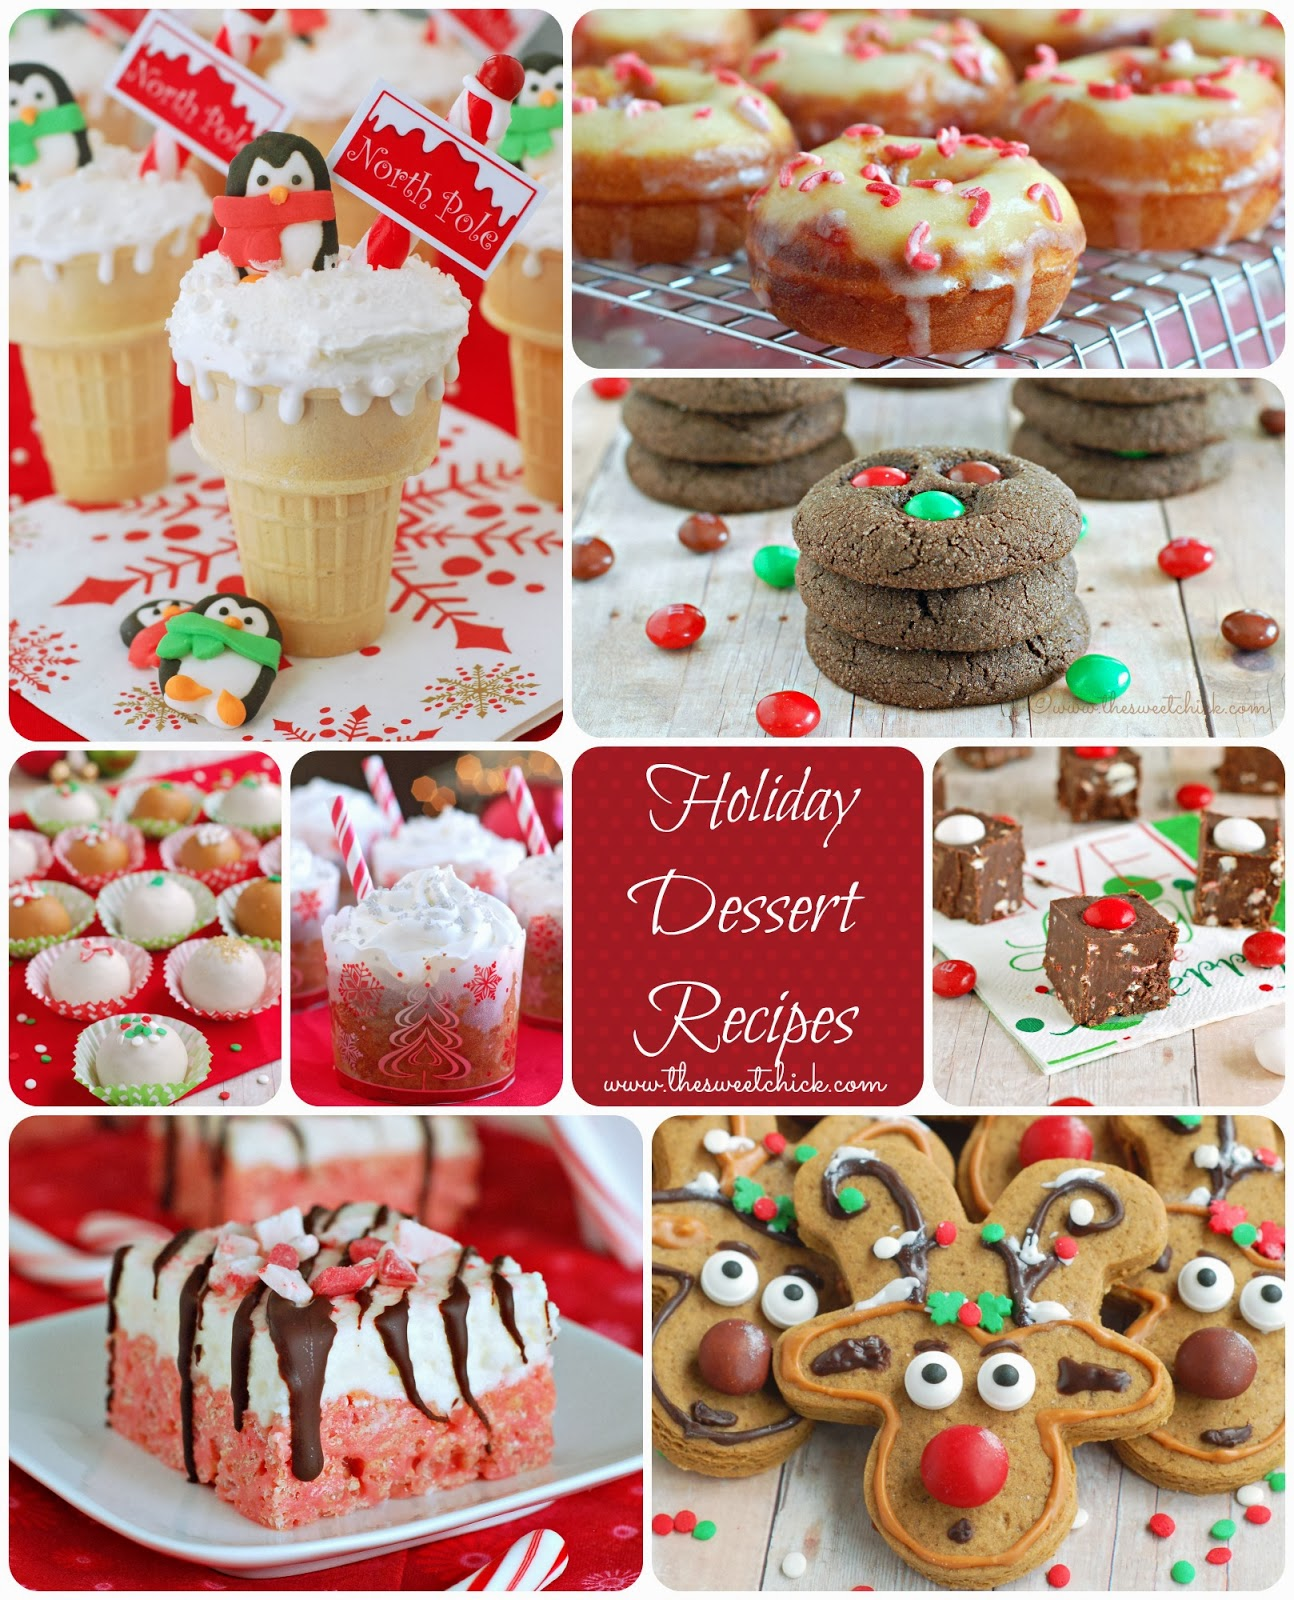 The Sweet Chick Holiday Dessert Recipes 2013